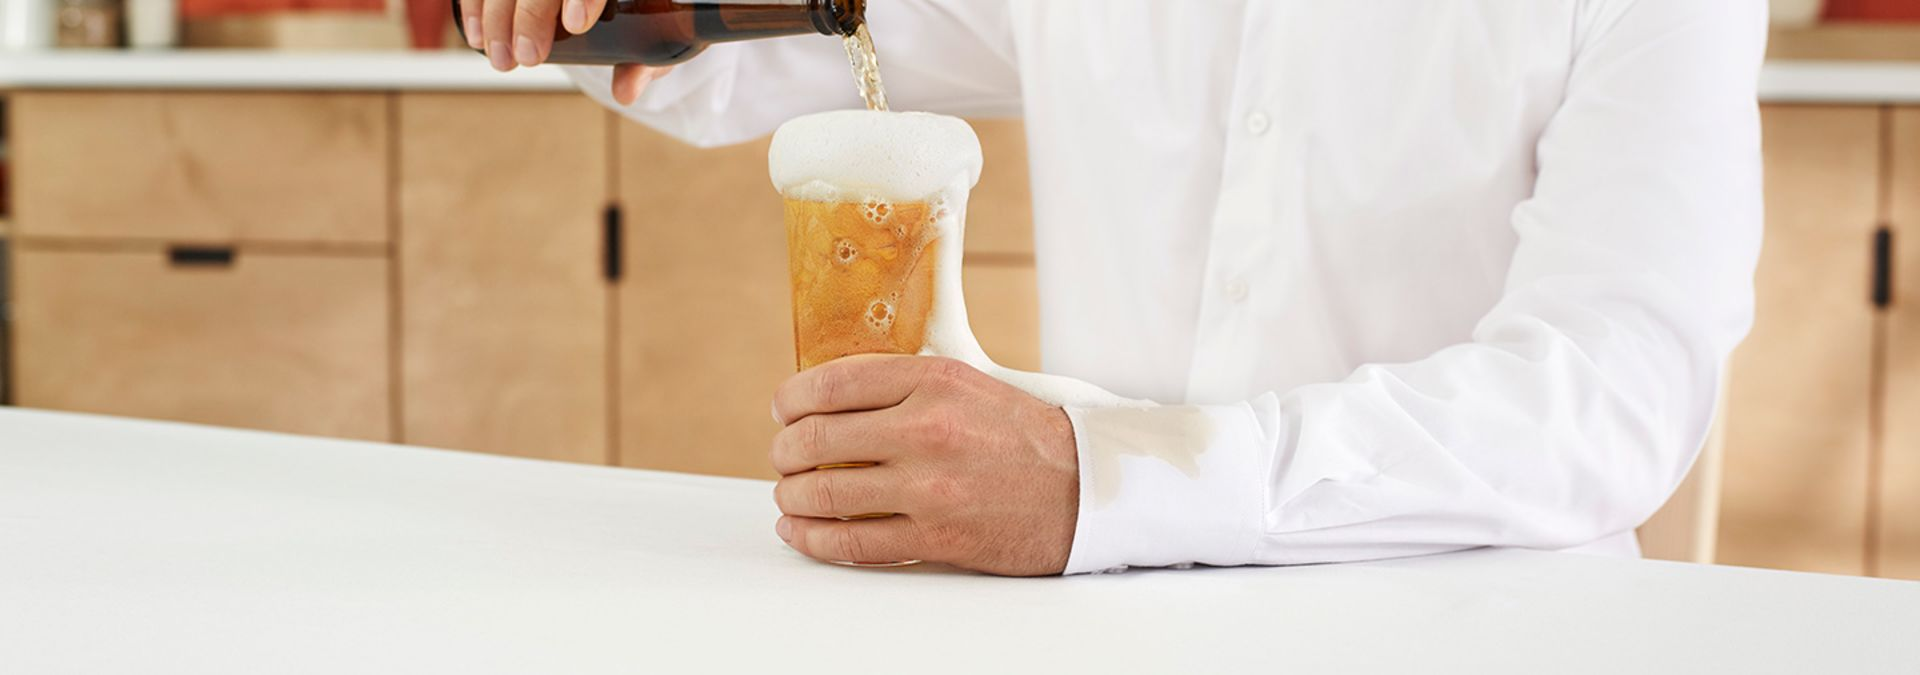 A person in a white shirt pouring beer into a glass